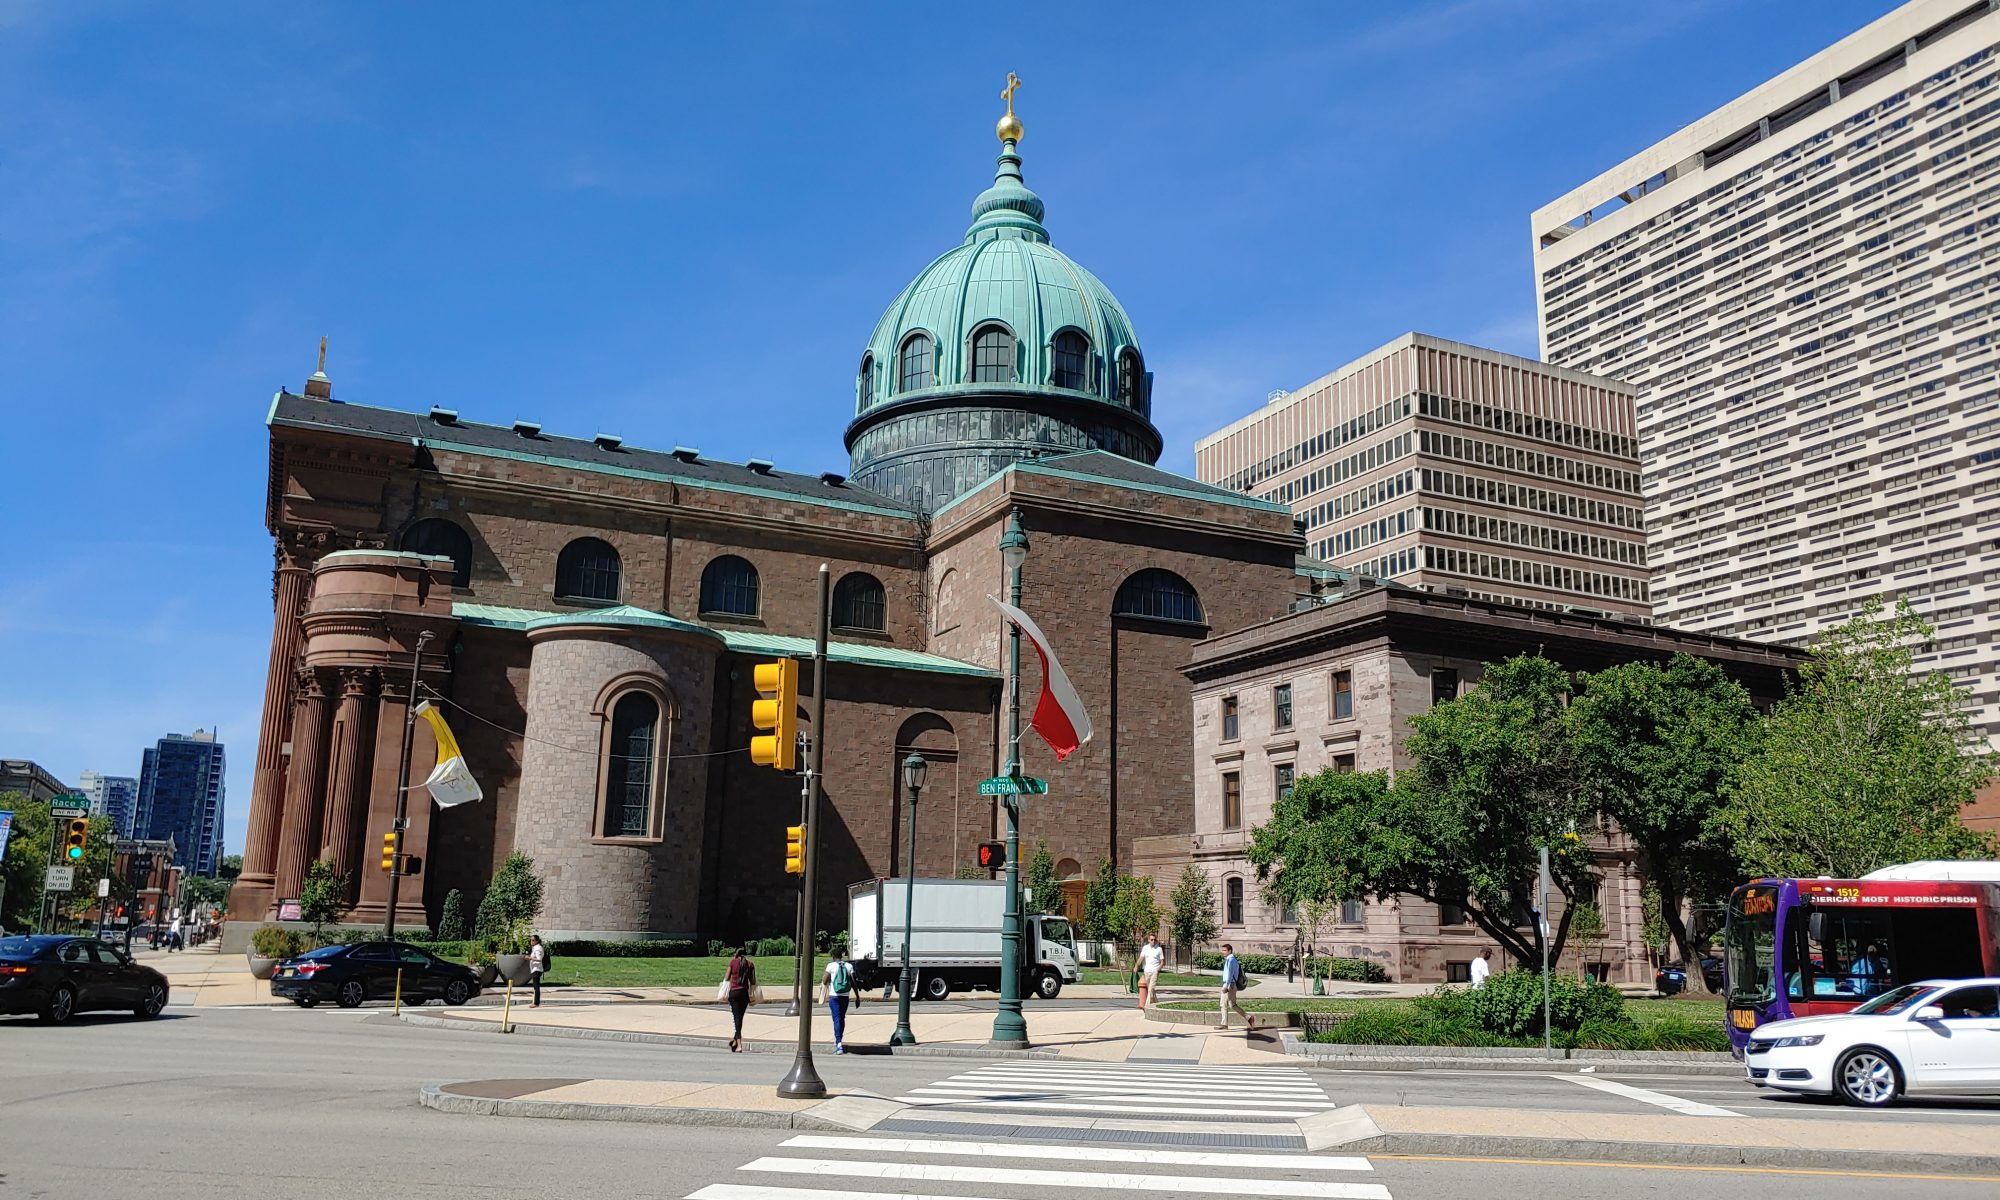 Basilica of Sts. Peter and Paul, Philadelphia